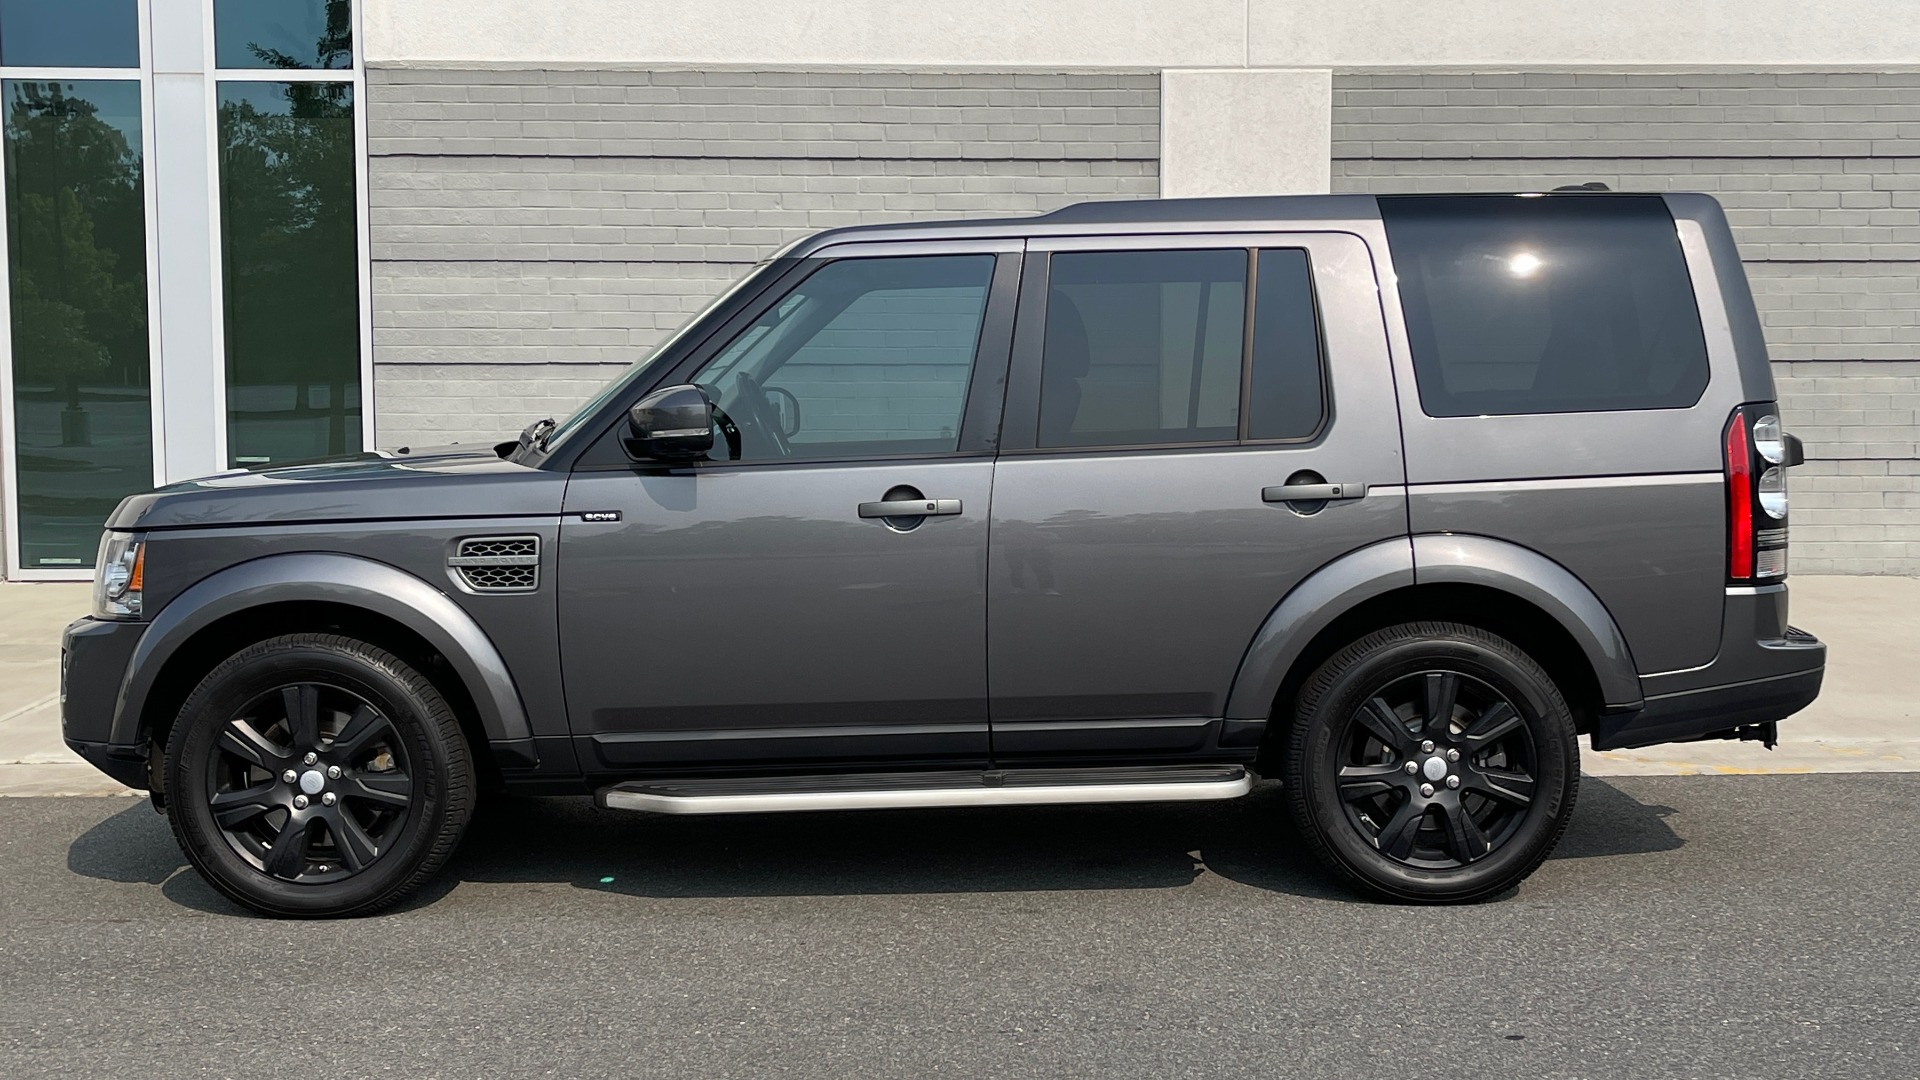 Used 2016 Land Rover LR4 HSE / NAV / SUNROOF / 3-ROW / MERIDIAN SOUND SYS / REARVIEW for sale $30,995 at Formula Imports in Charlotte NC 28227 4